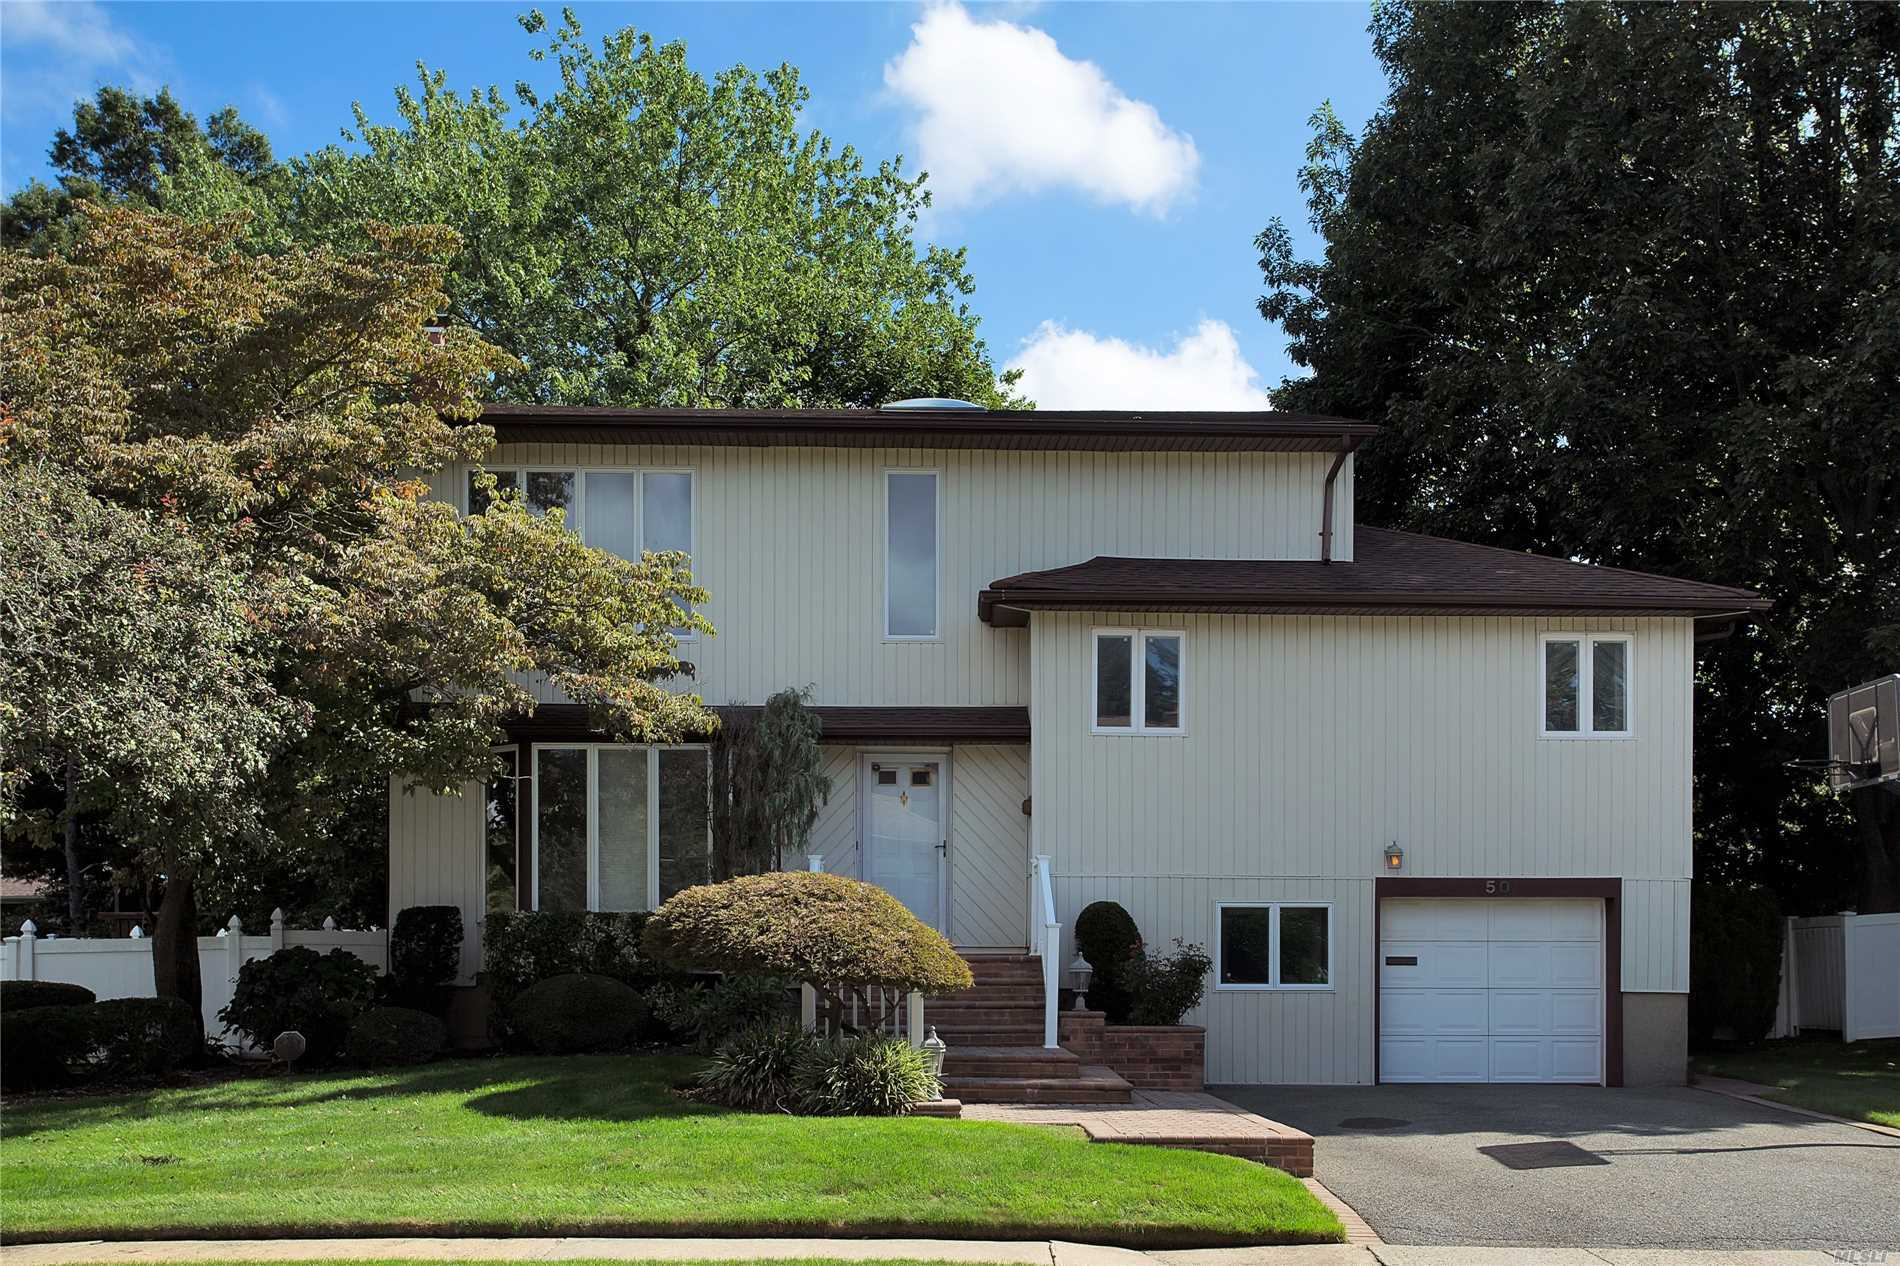 Great Expanded Split - Mid Block Location - Many Updates With Heating, , Cac Etc. Kitchen And Family Room Are Expanded - Gas Cooking - Gas To House Already- Too Much To Mention - Must See